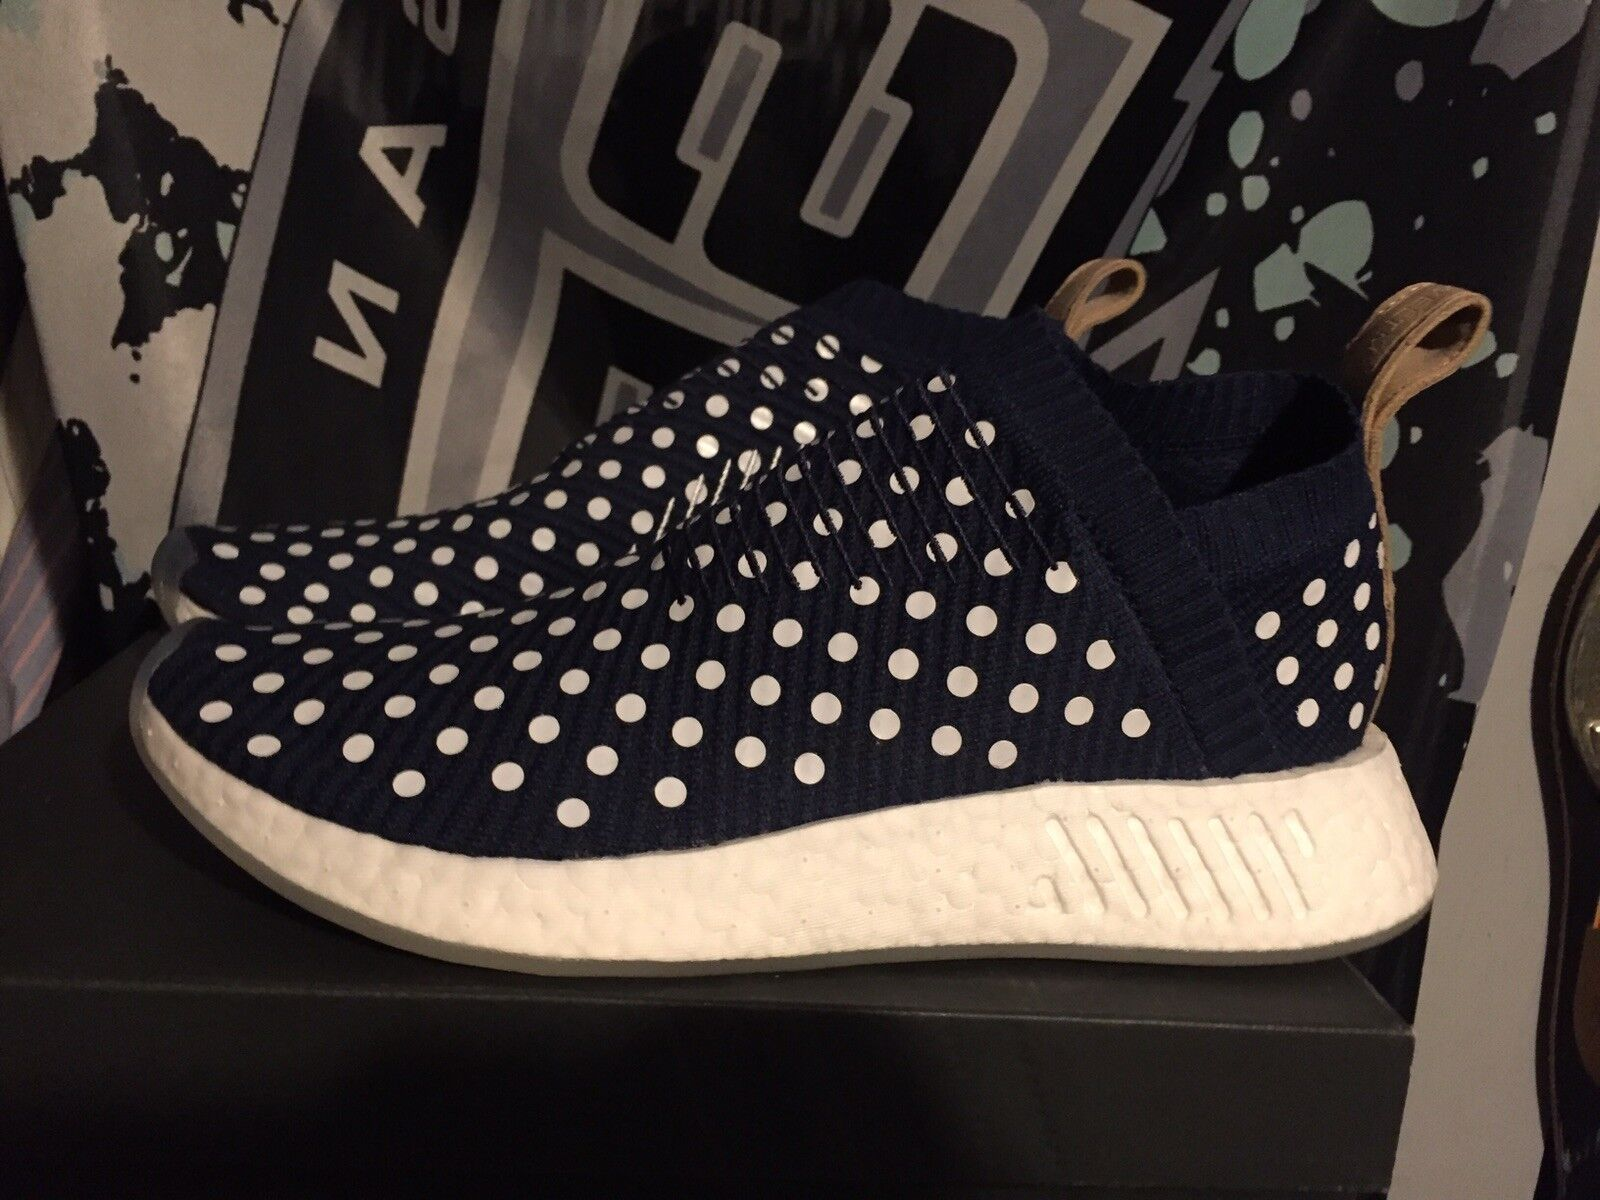 Adidas Nmd Boost Polka Dot Comfortable New shoes for men and women, limited time discount